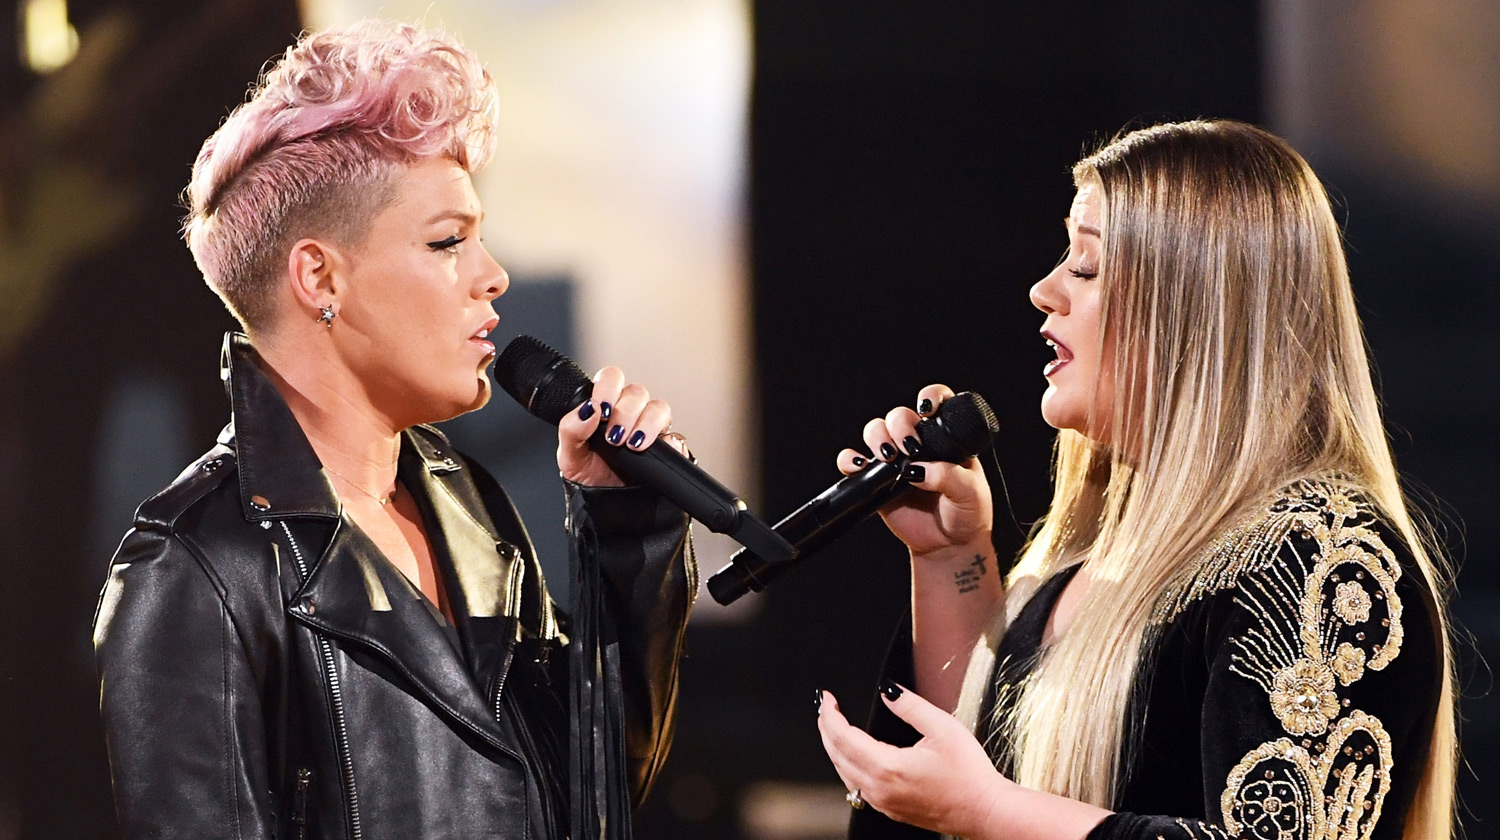 Pink & Kelly Clarkson's Opening Number at American Music Awards 2017 - Performance Details Revealed!